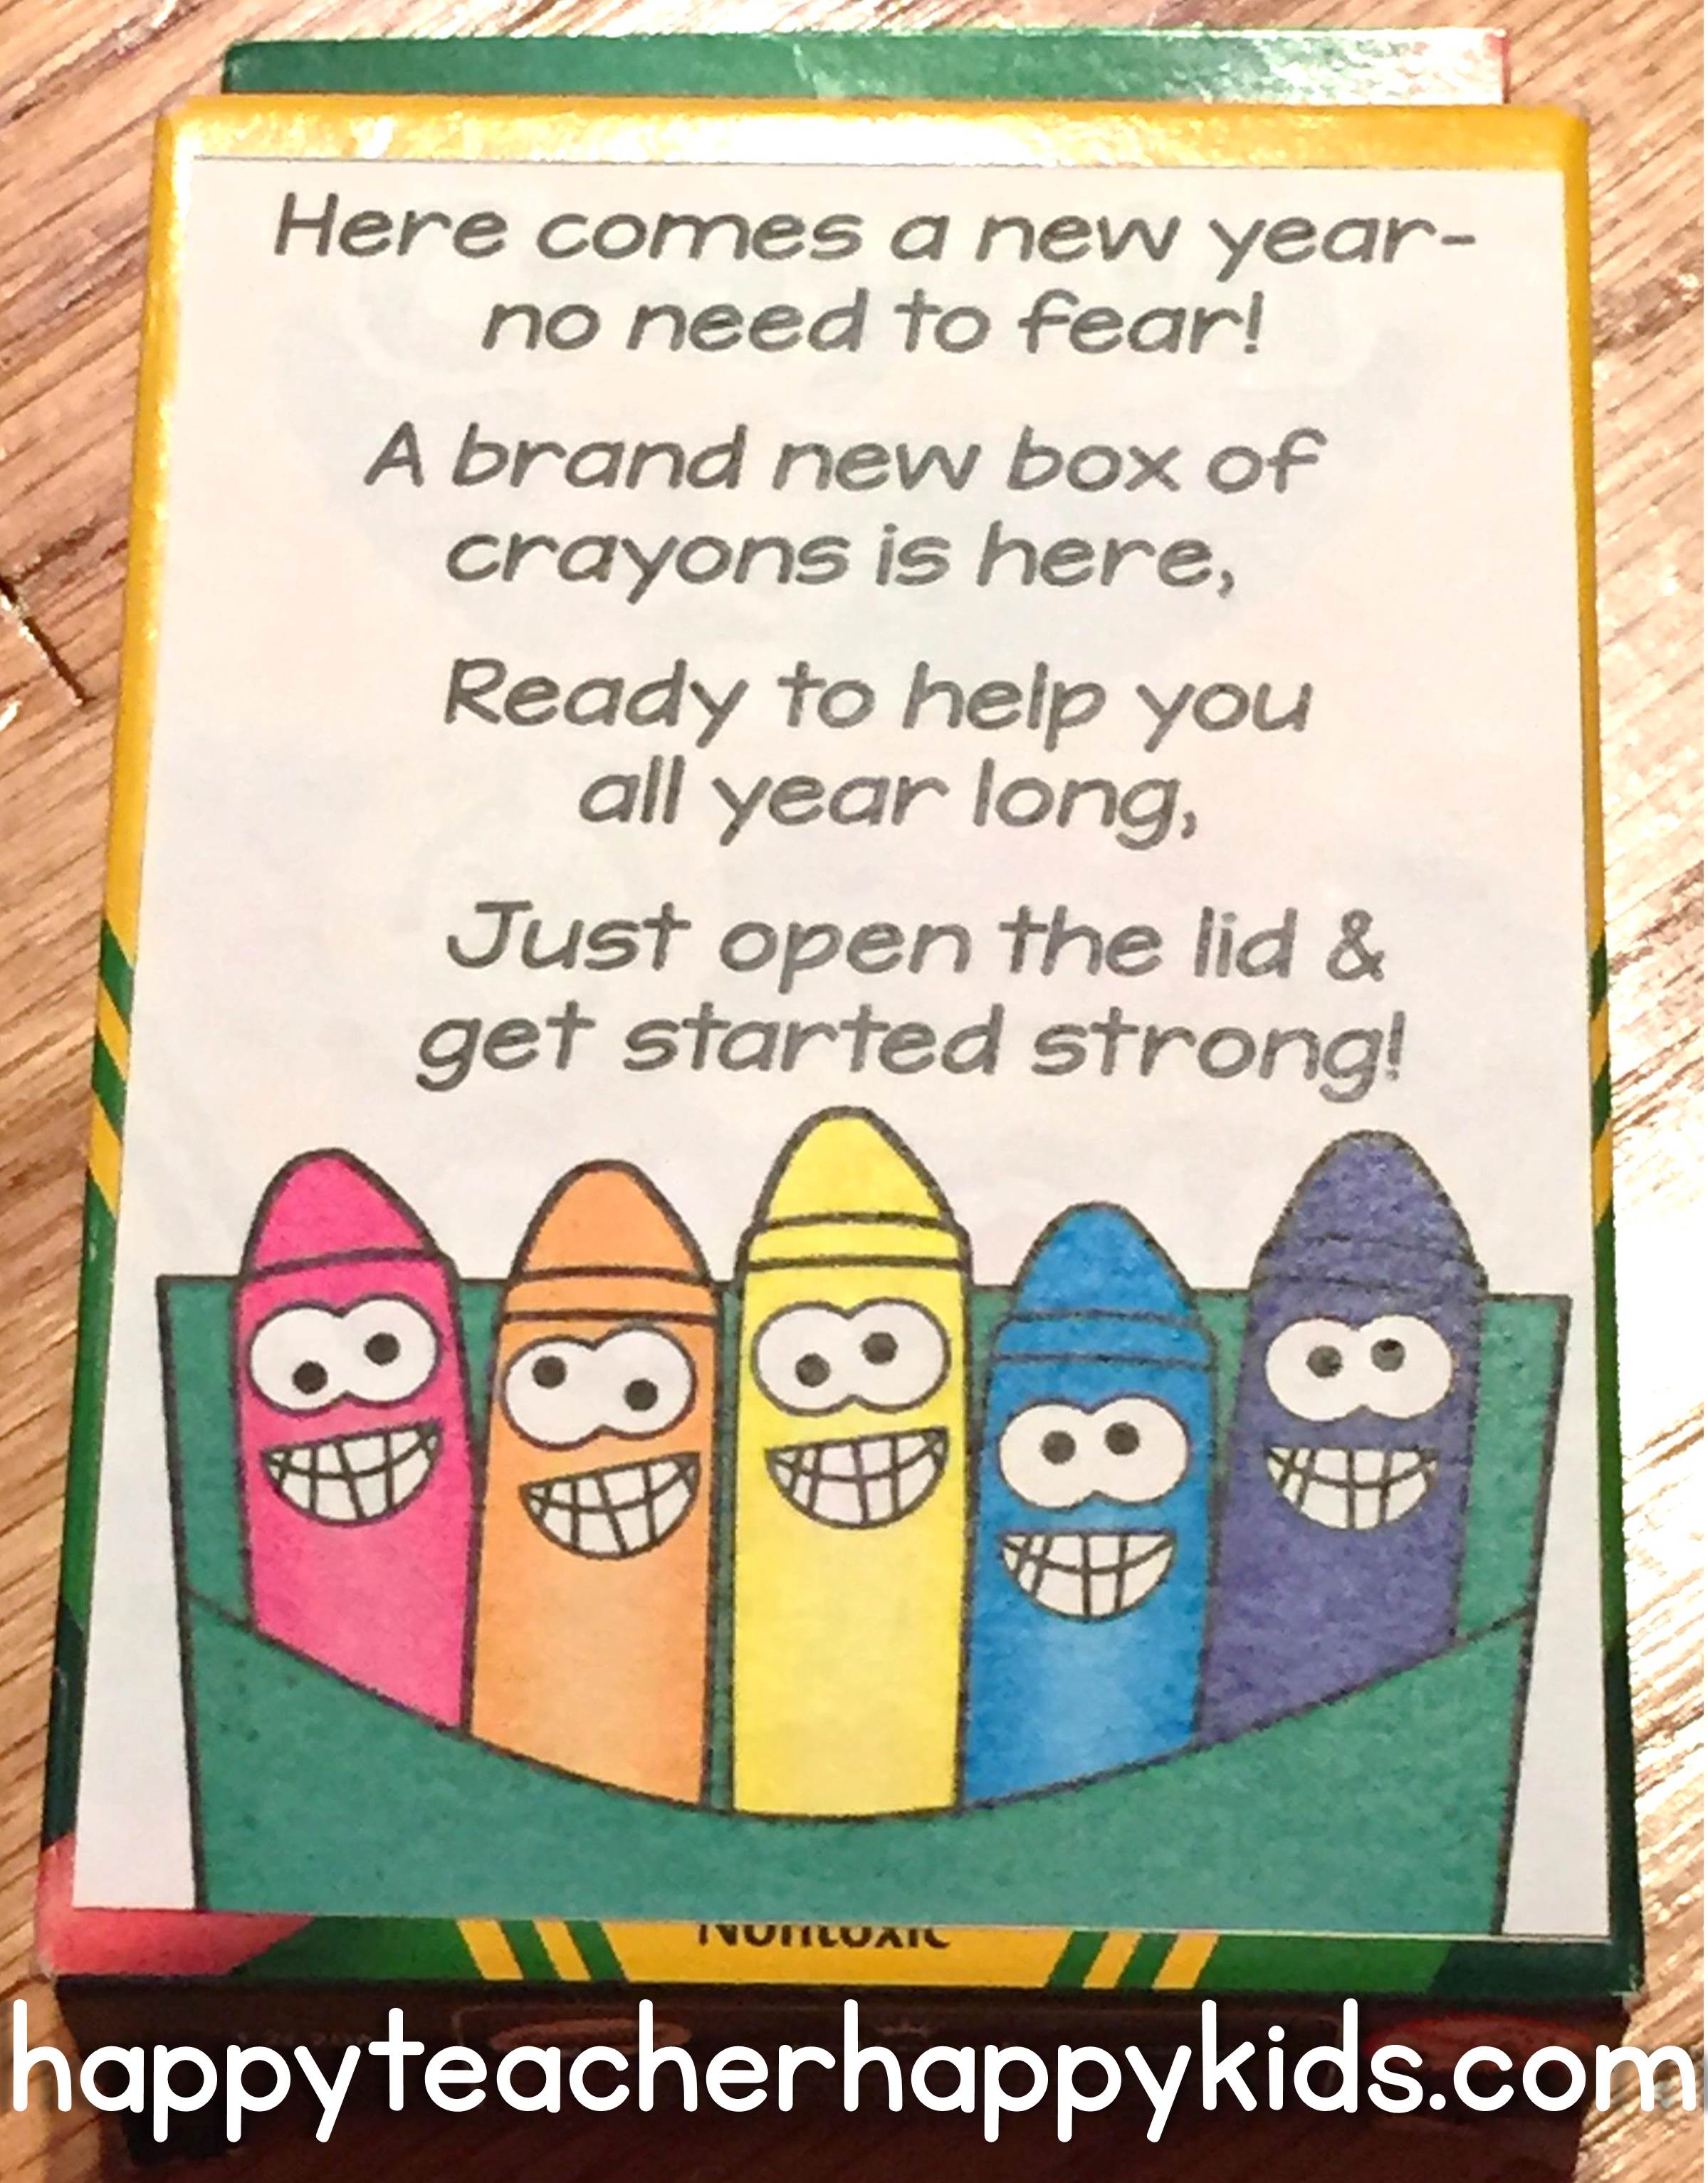 a new years box of crayon pinterest image